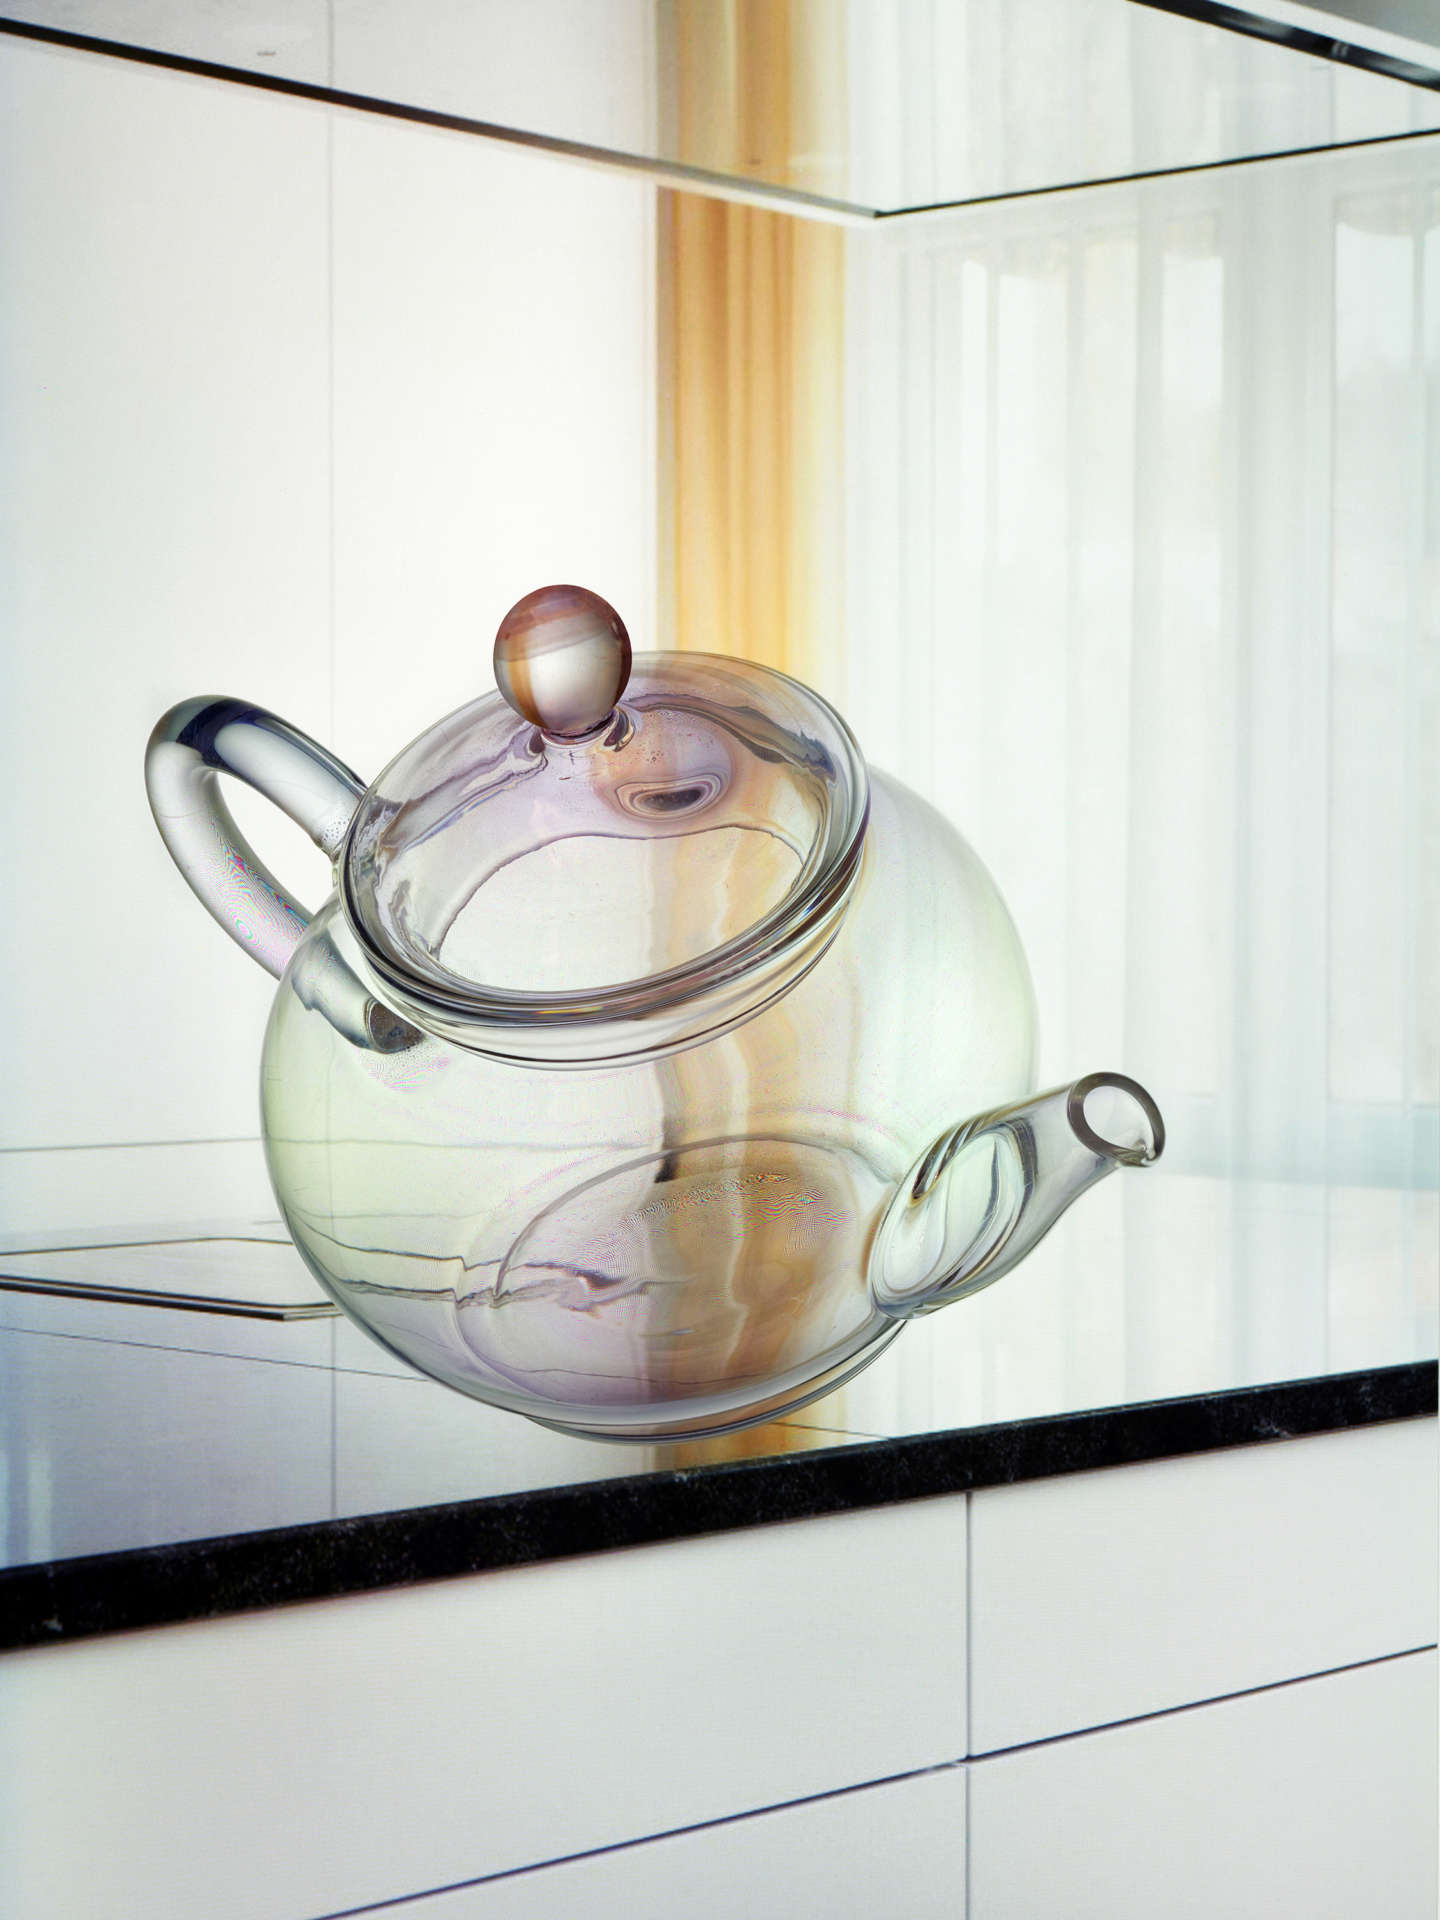 A transparent teapot made of glass falls from a white kitchen unit with a black worktop